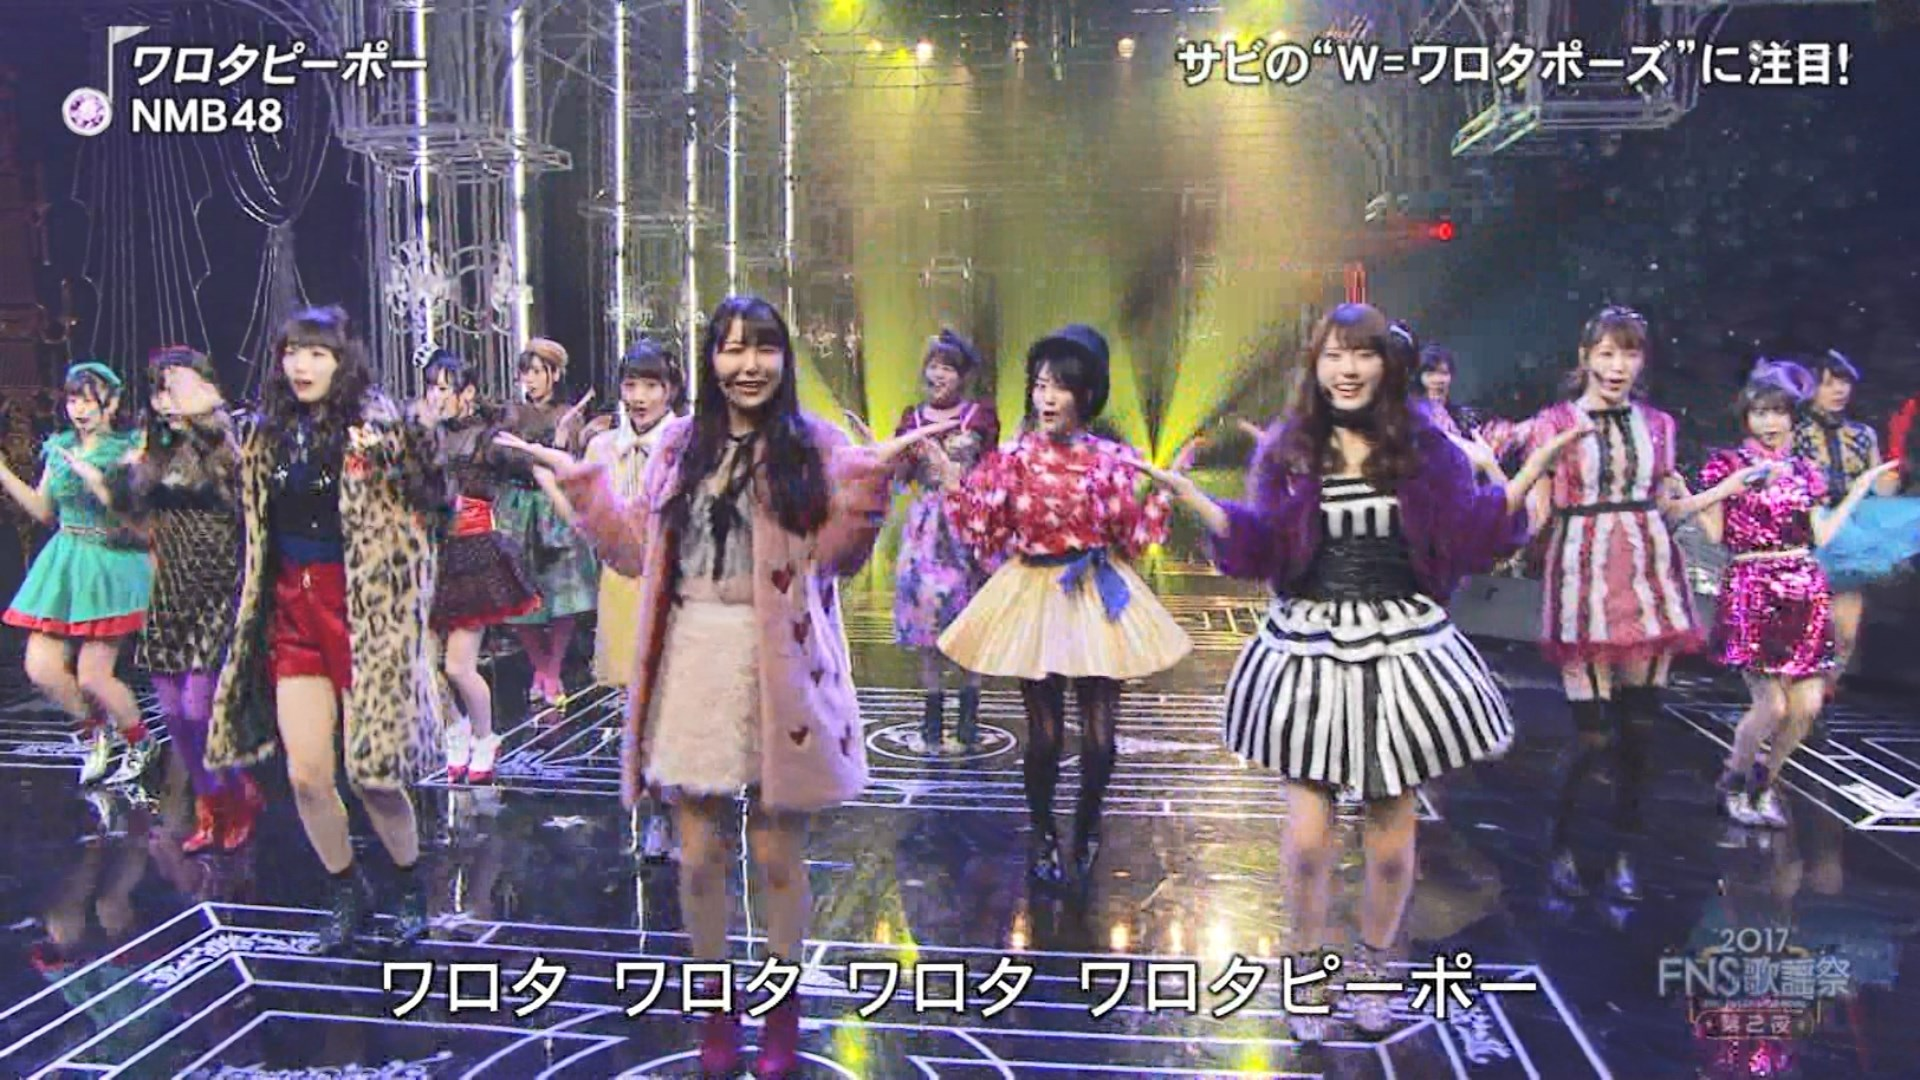 2017FNS歌謡祭第2夜・NMB48ワロタピーポーキャプ-063